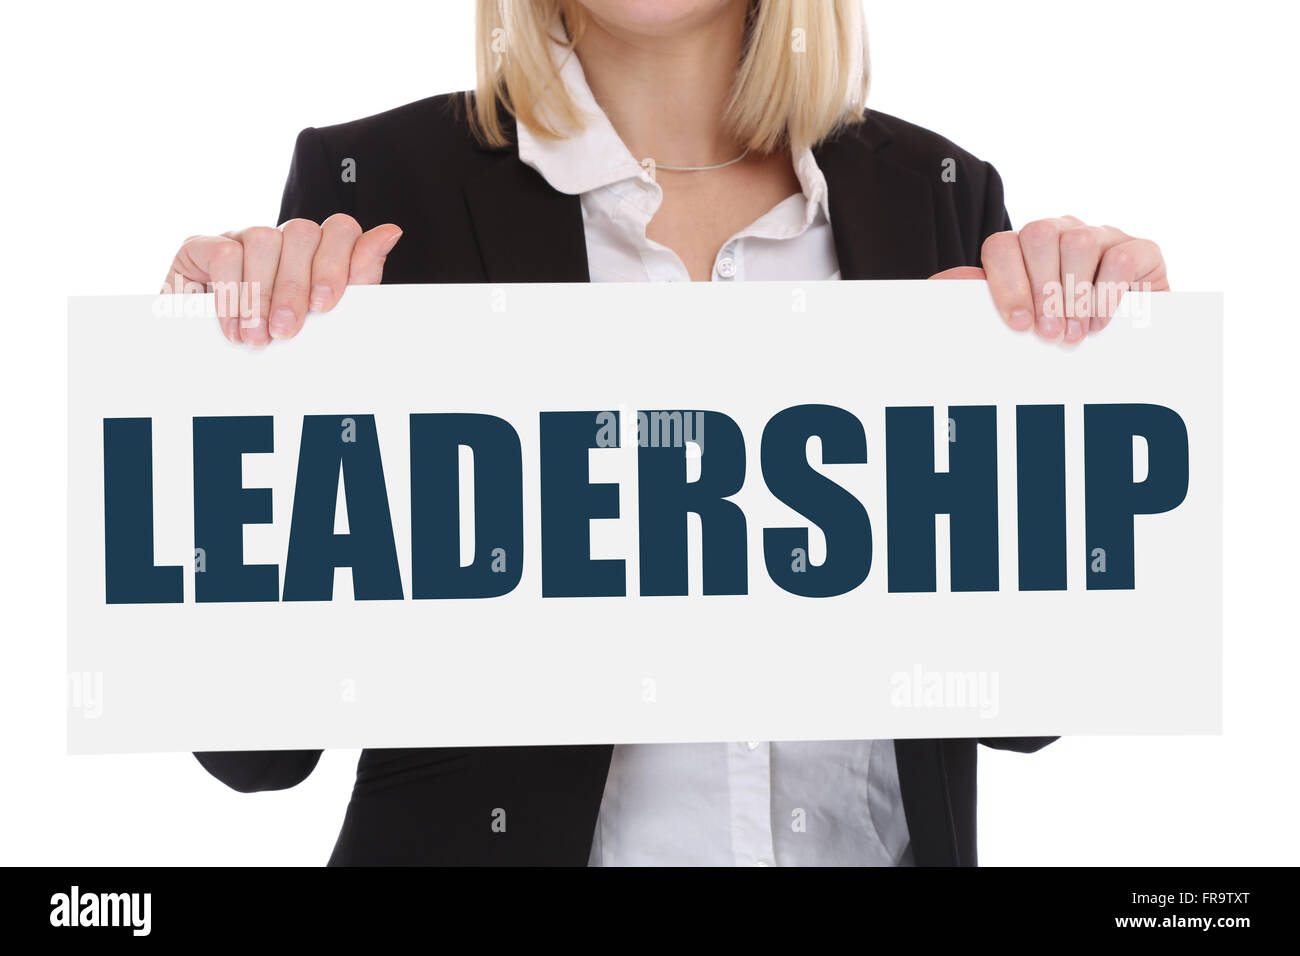 Leadership leading success successful win winning growth finances business concept development - Stock Image